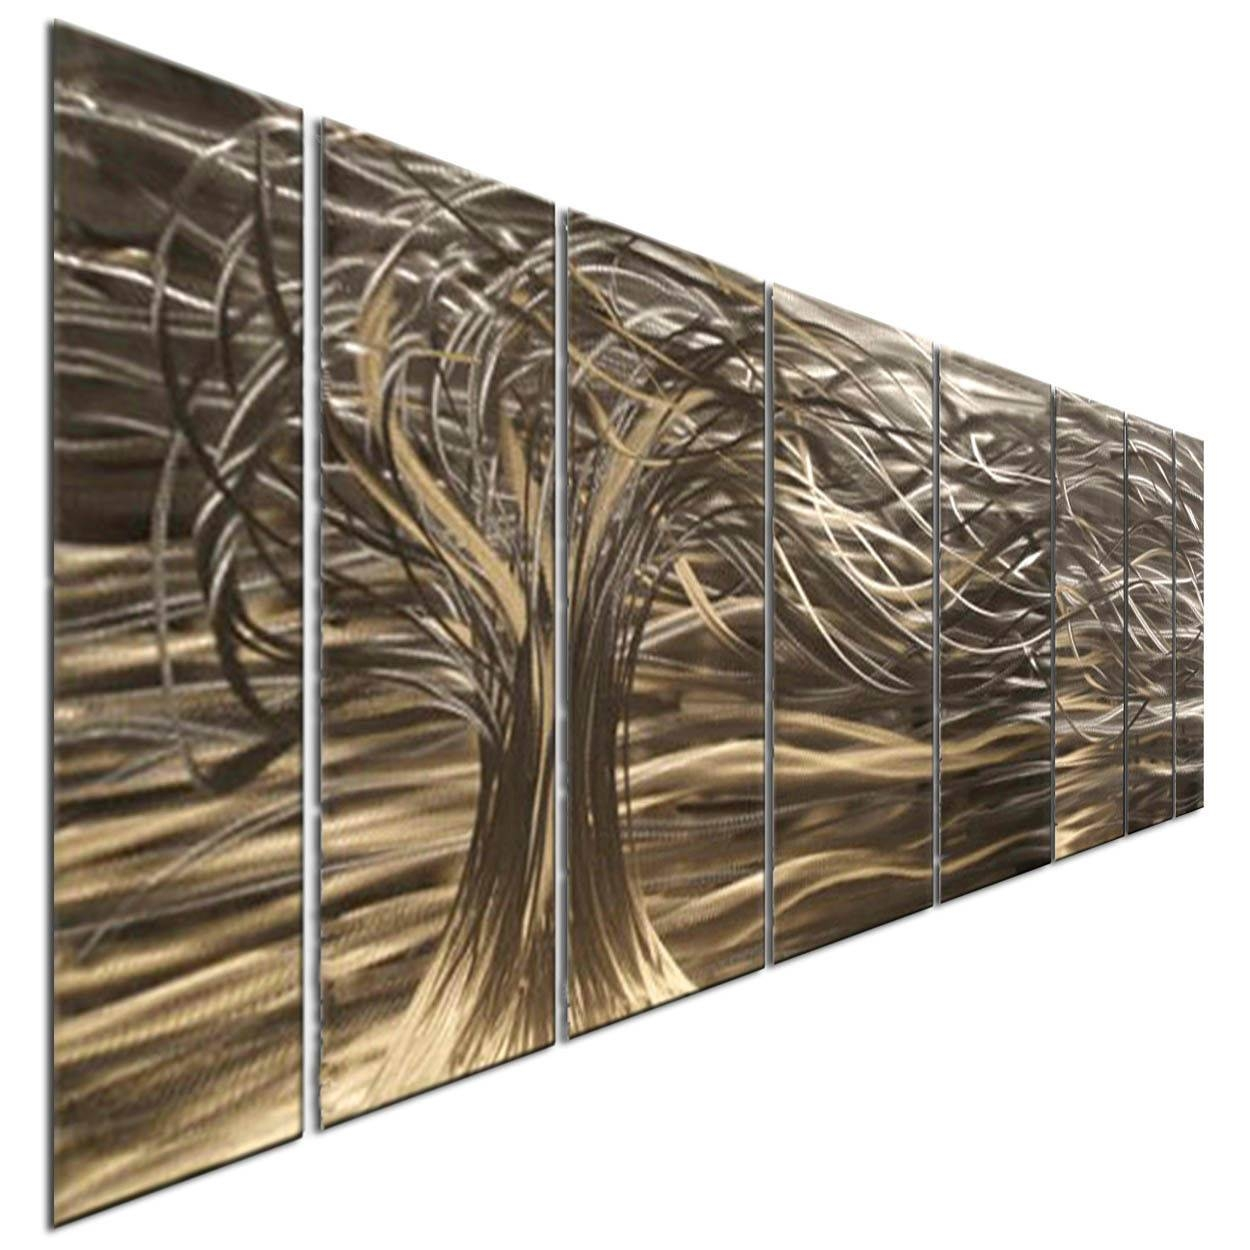 Contemporary 7 Panel Metal Wall Art Sculpturesash Carl Home Throughout Latest Ash Carl Metal Wall Art (View 3 of 30)